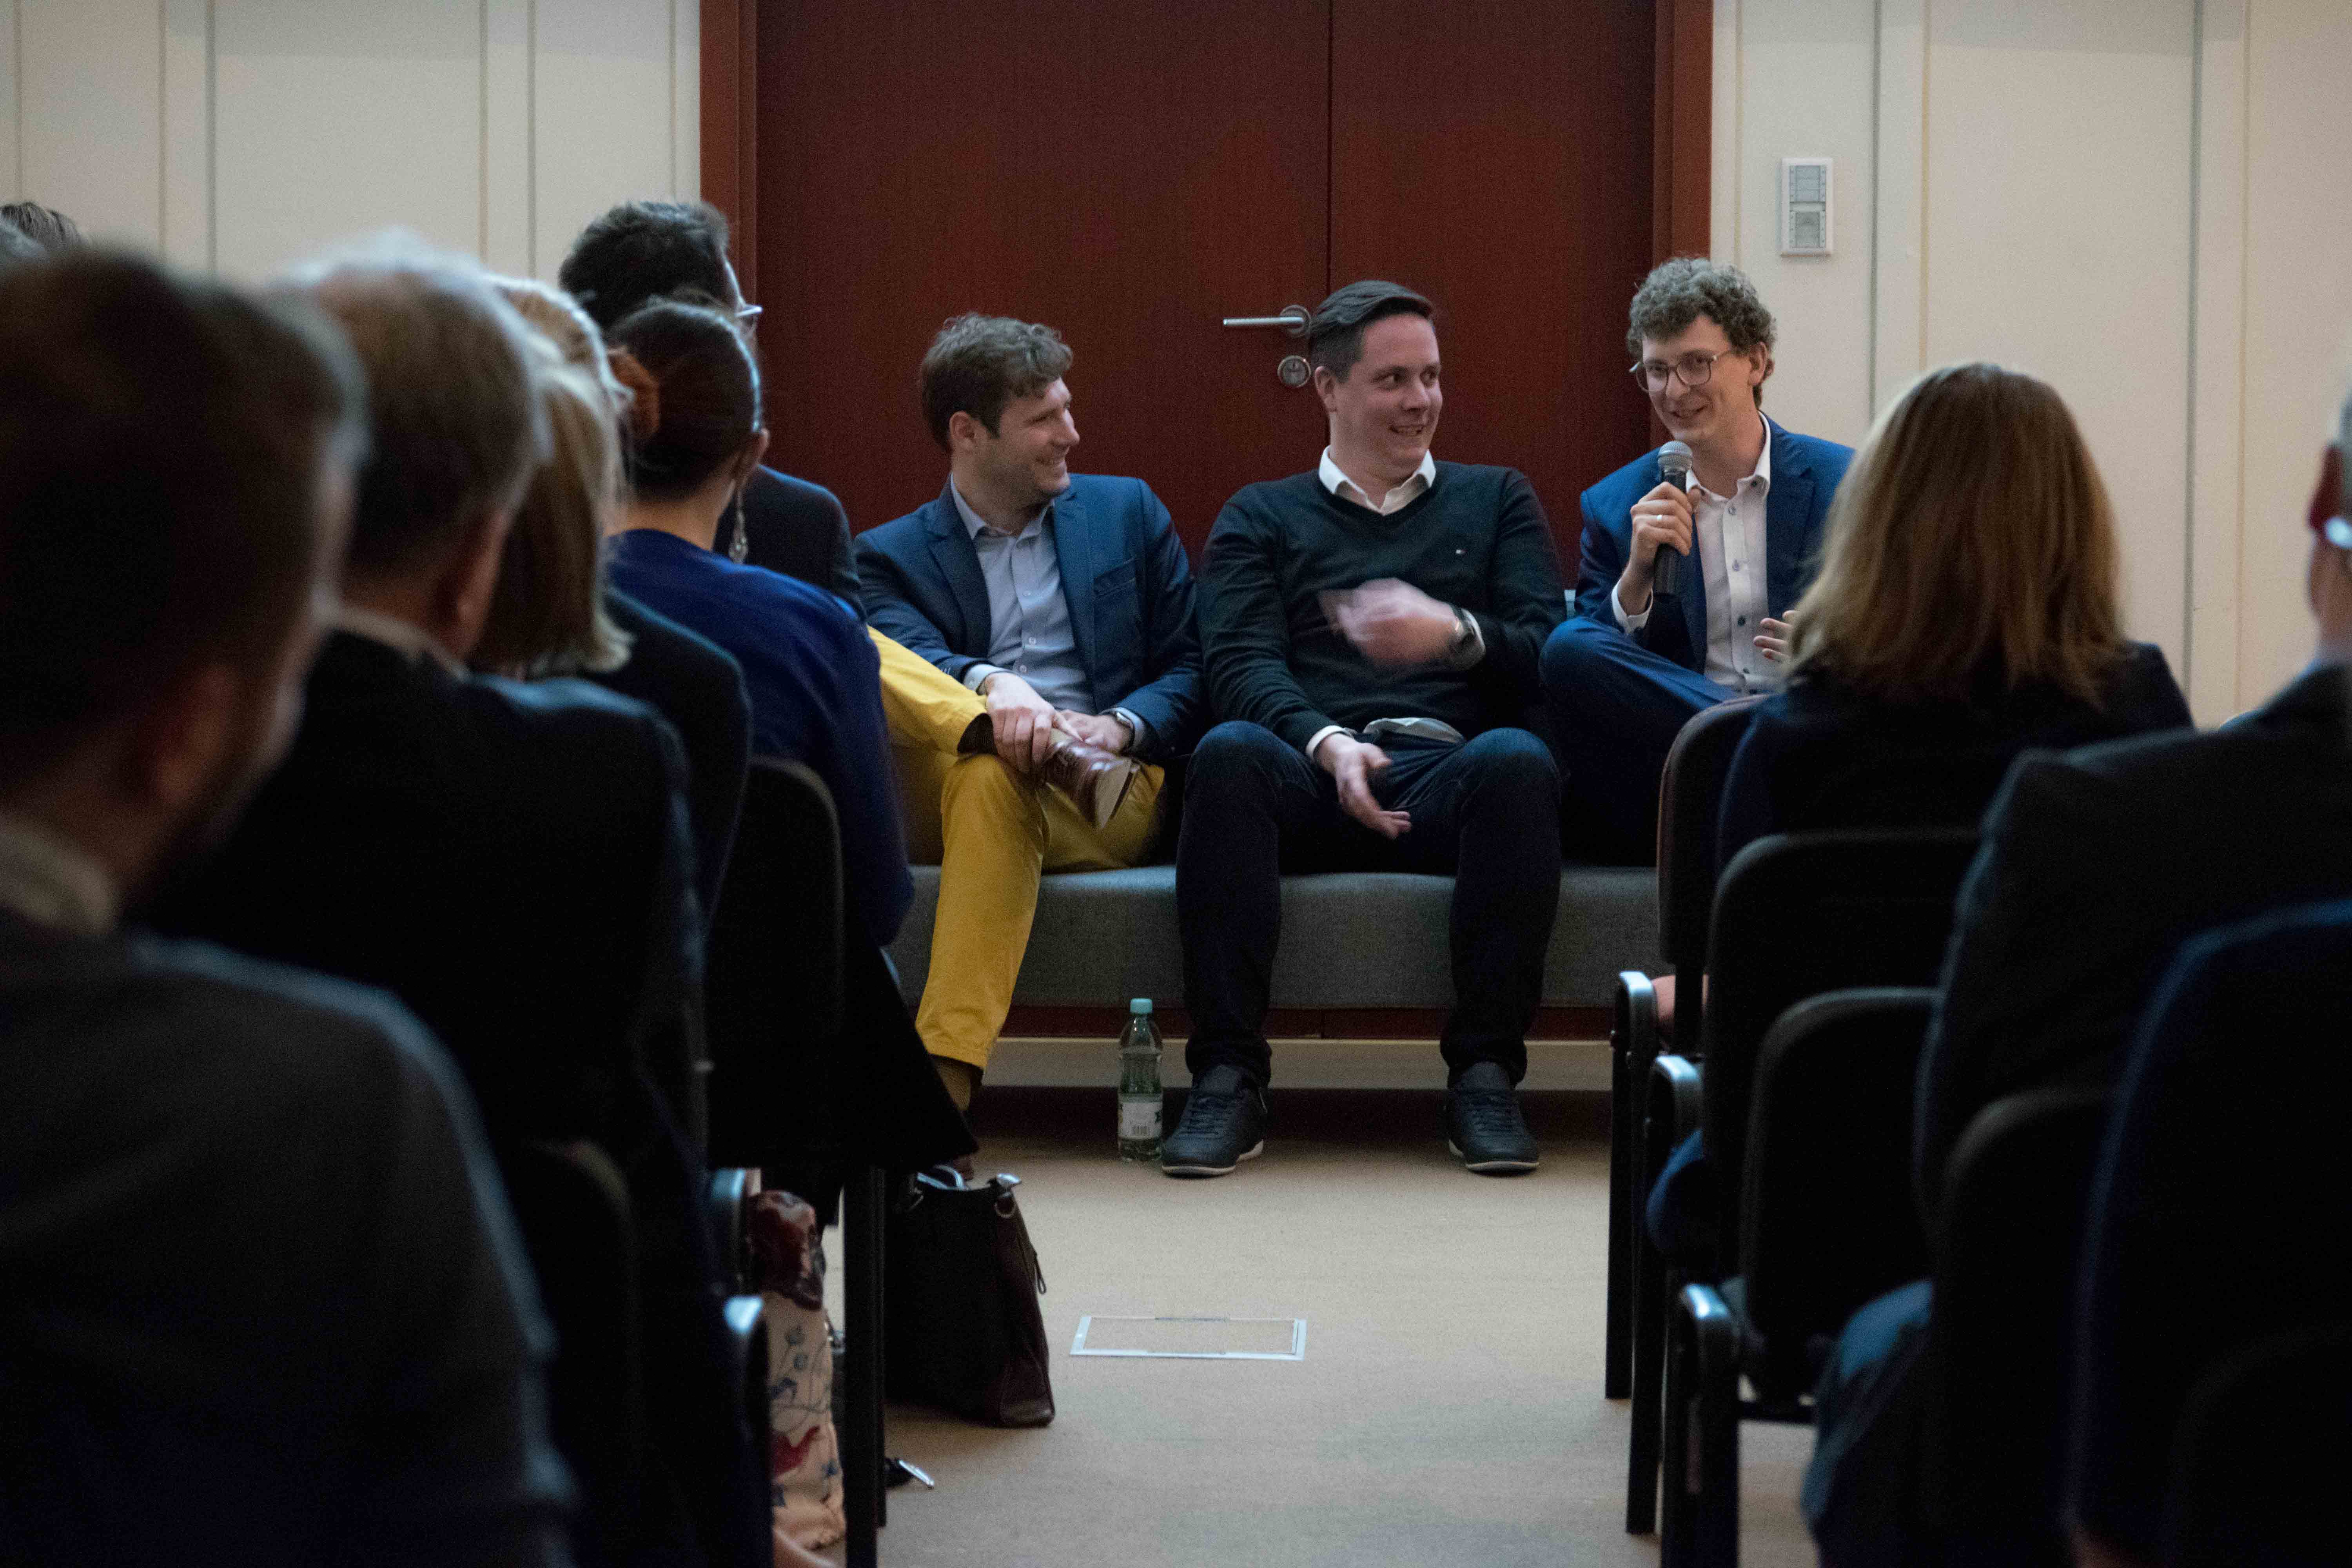 Photos of our conference held on the Sharing Economy on the19th of April in Warsaw